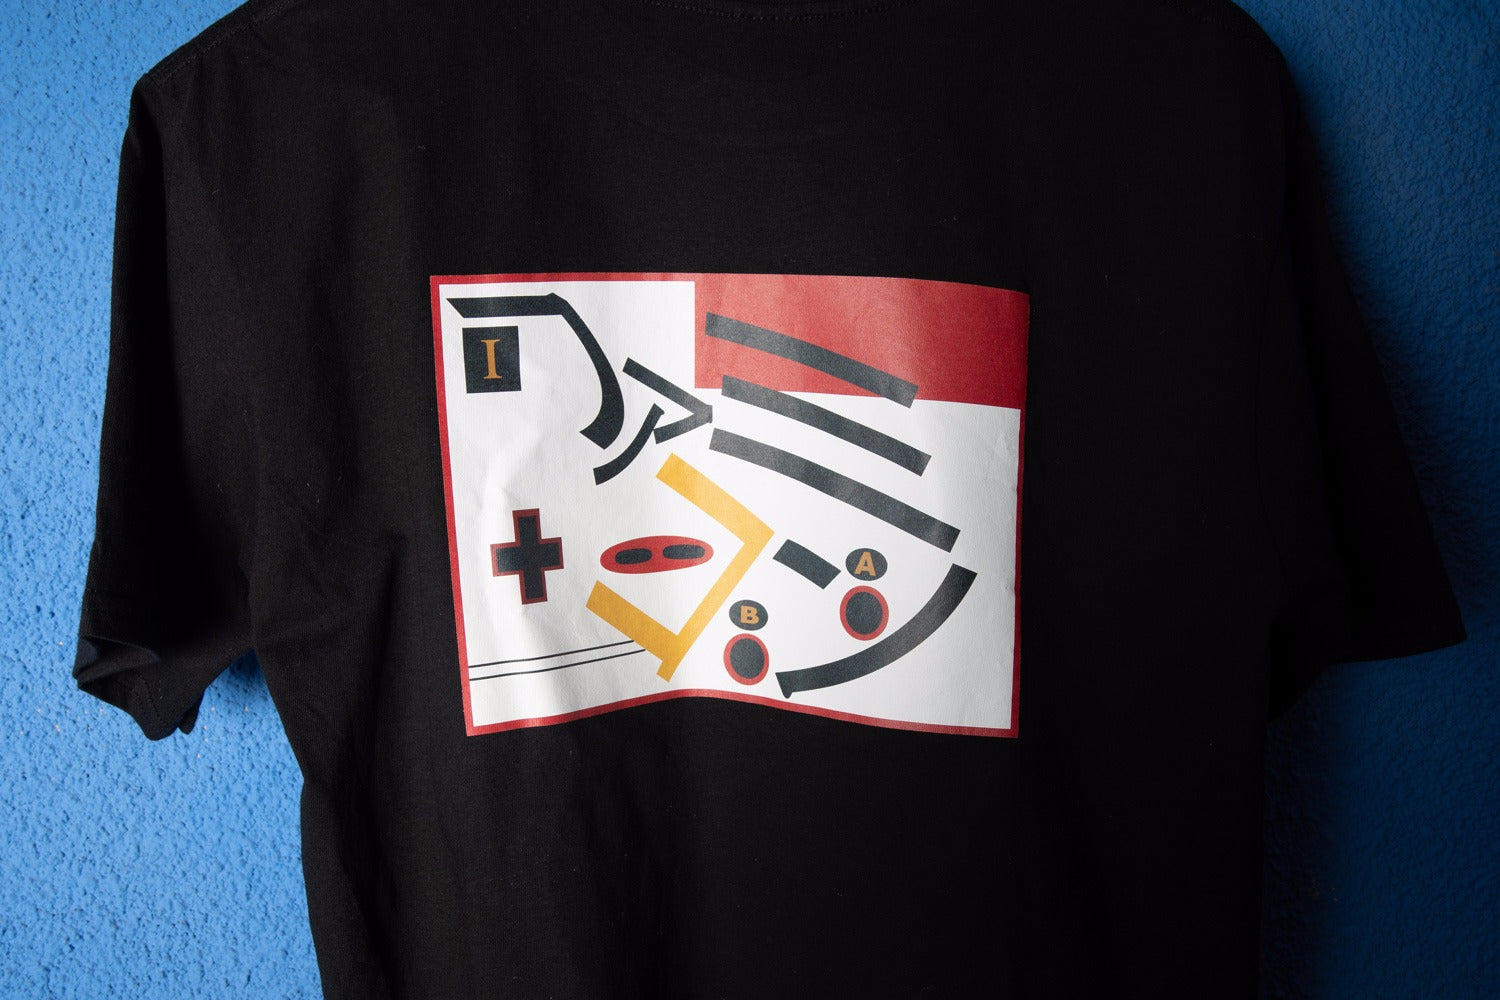 famicom,anni80,t-shirt, console, giapponese,a,b, japanese, style, sportivo,street, style, made in italy,katakana,tvgame